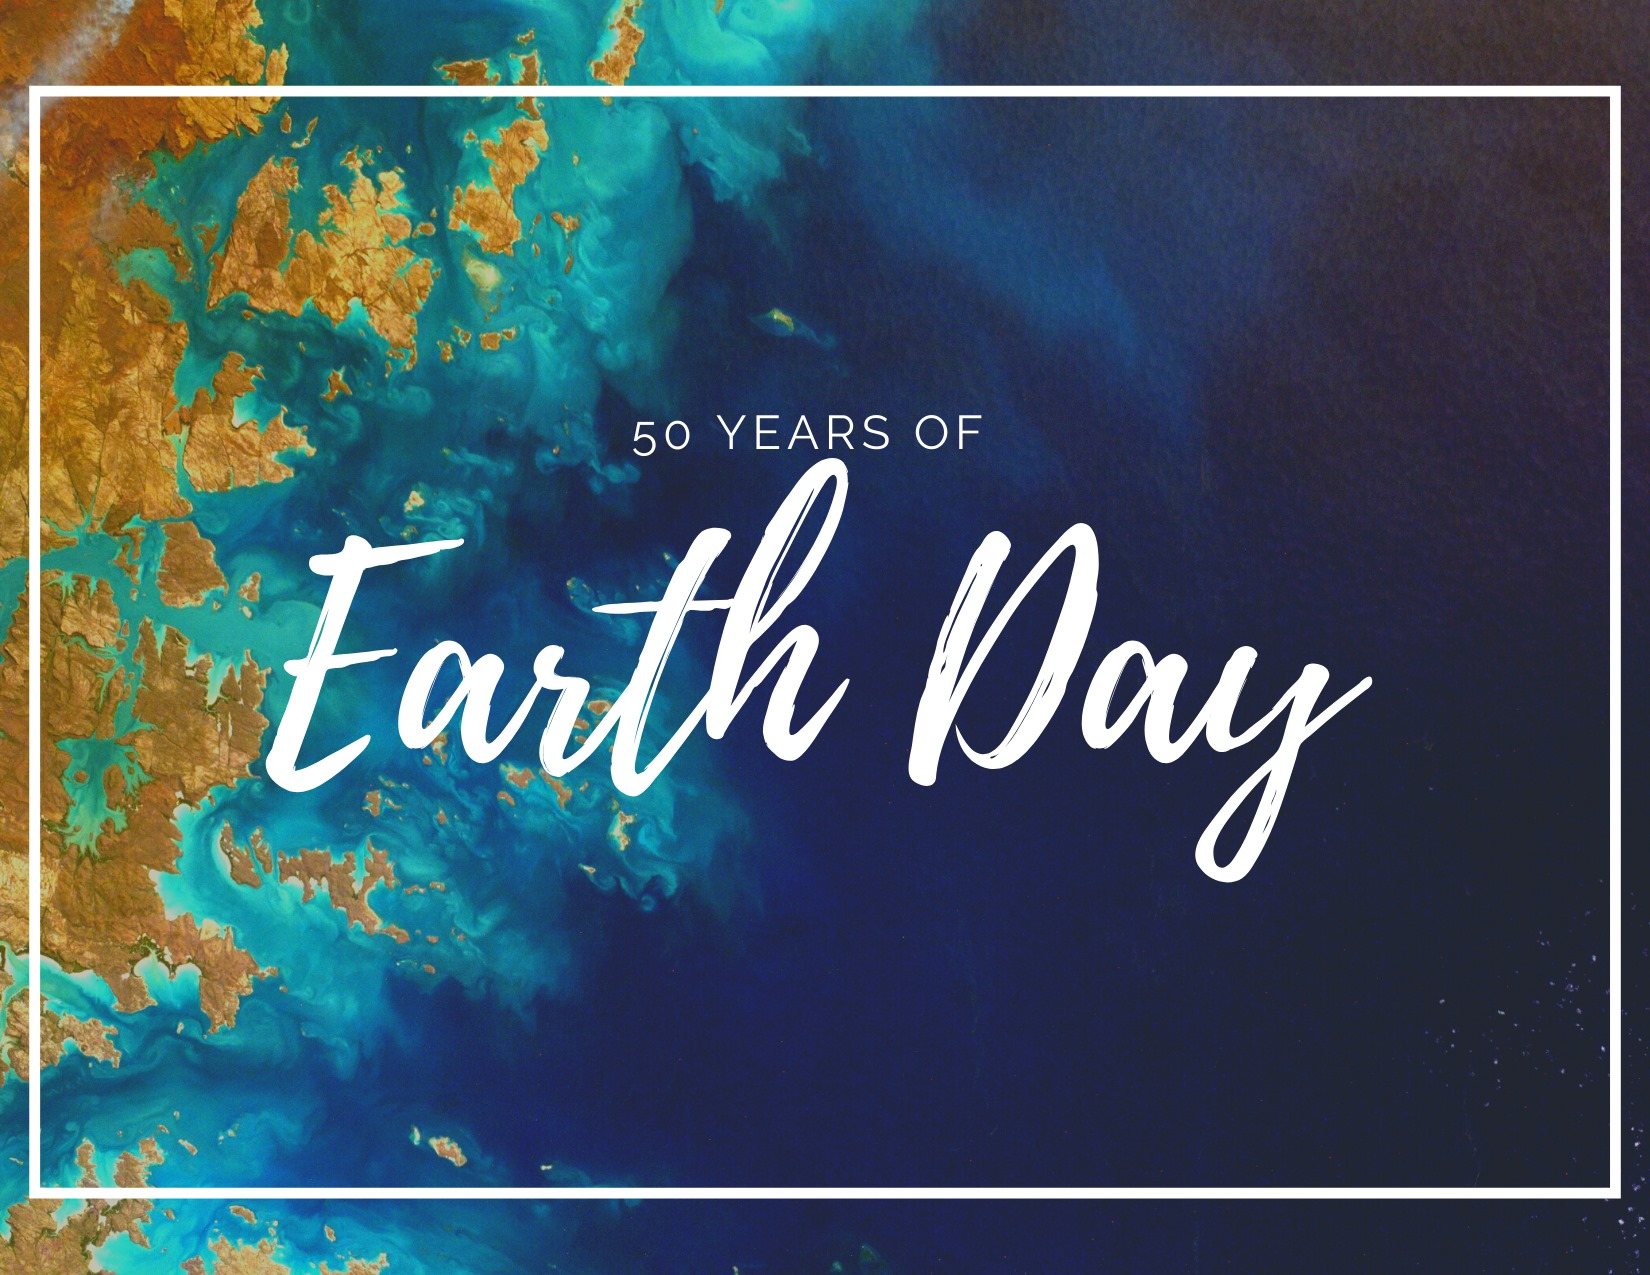 Earth Day at Home – ways to celebrate the 50th anniversary virtually